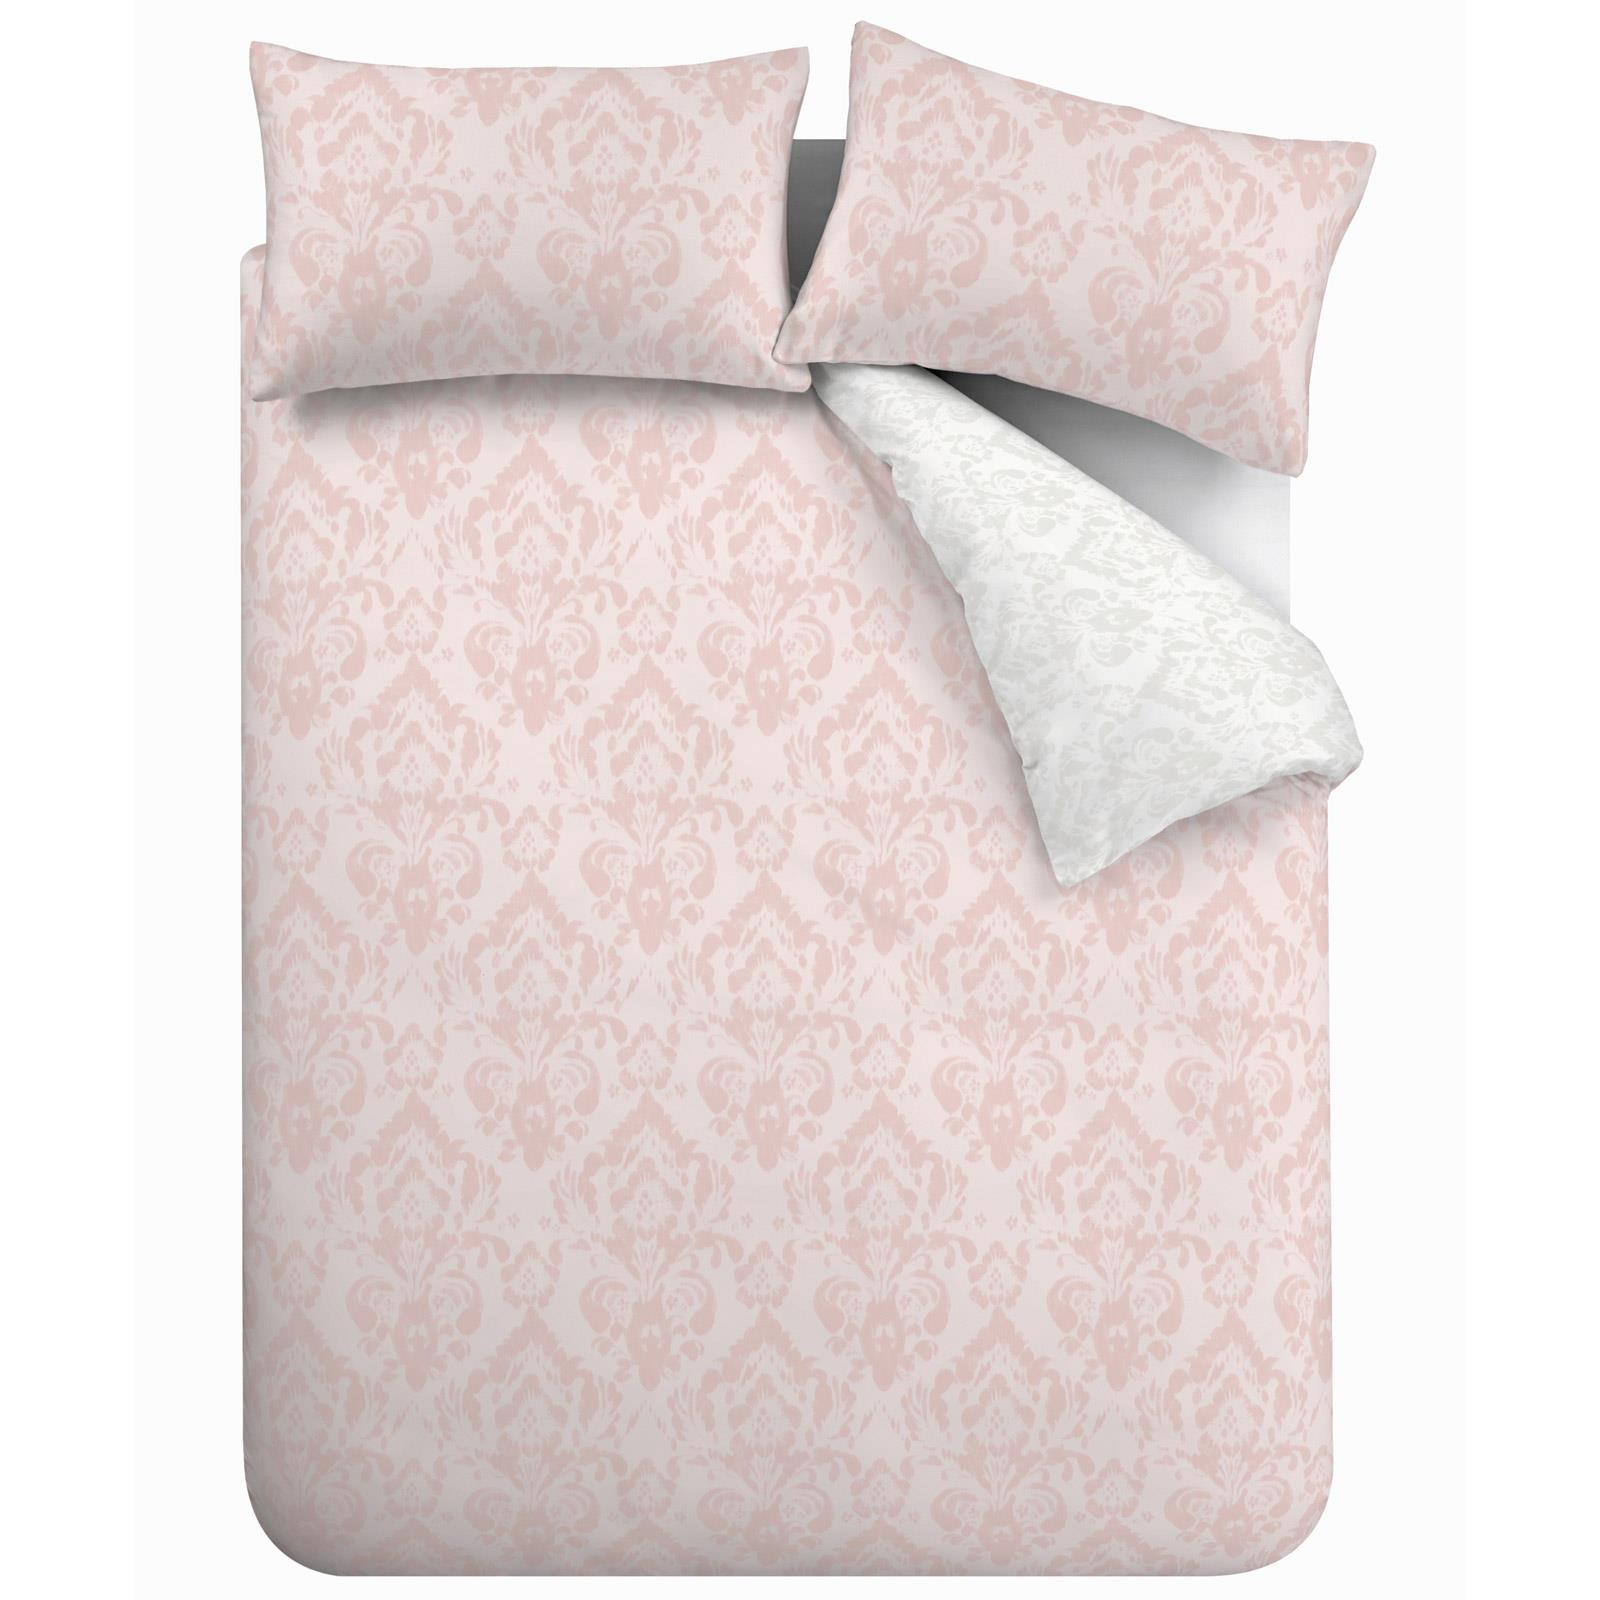 thumbnail 7 - Catherine Lansfield Damask Blush Duvet Covers Pink Grey Quilt Cover Bedding Sets